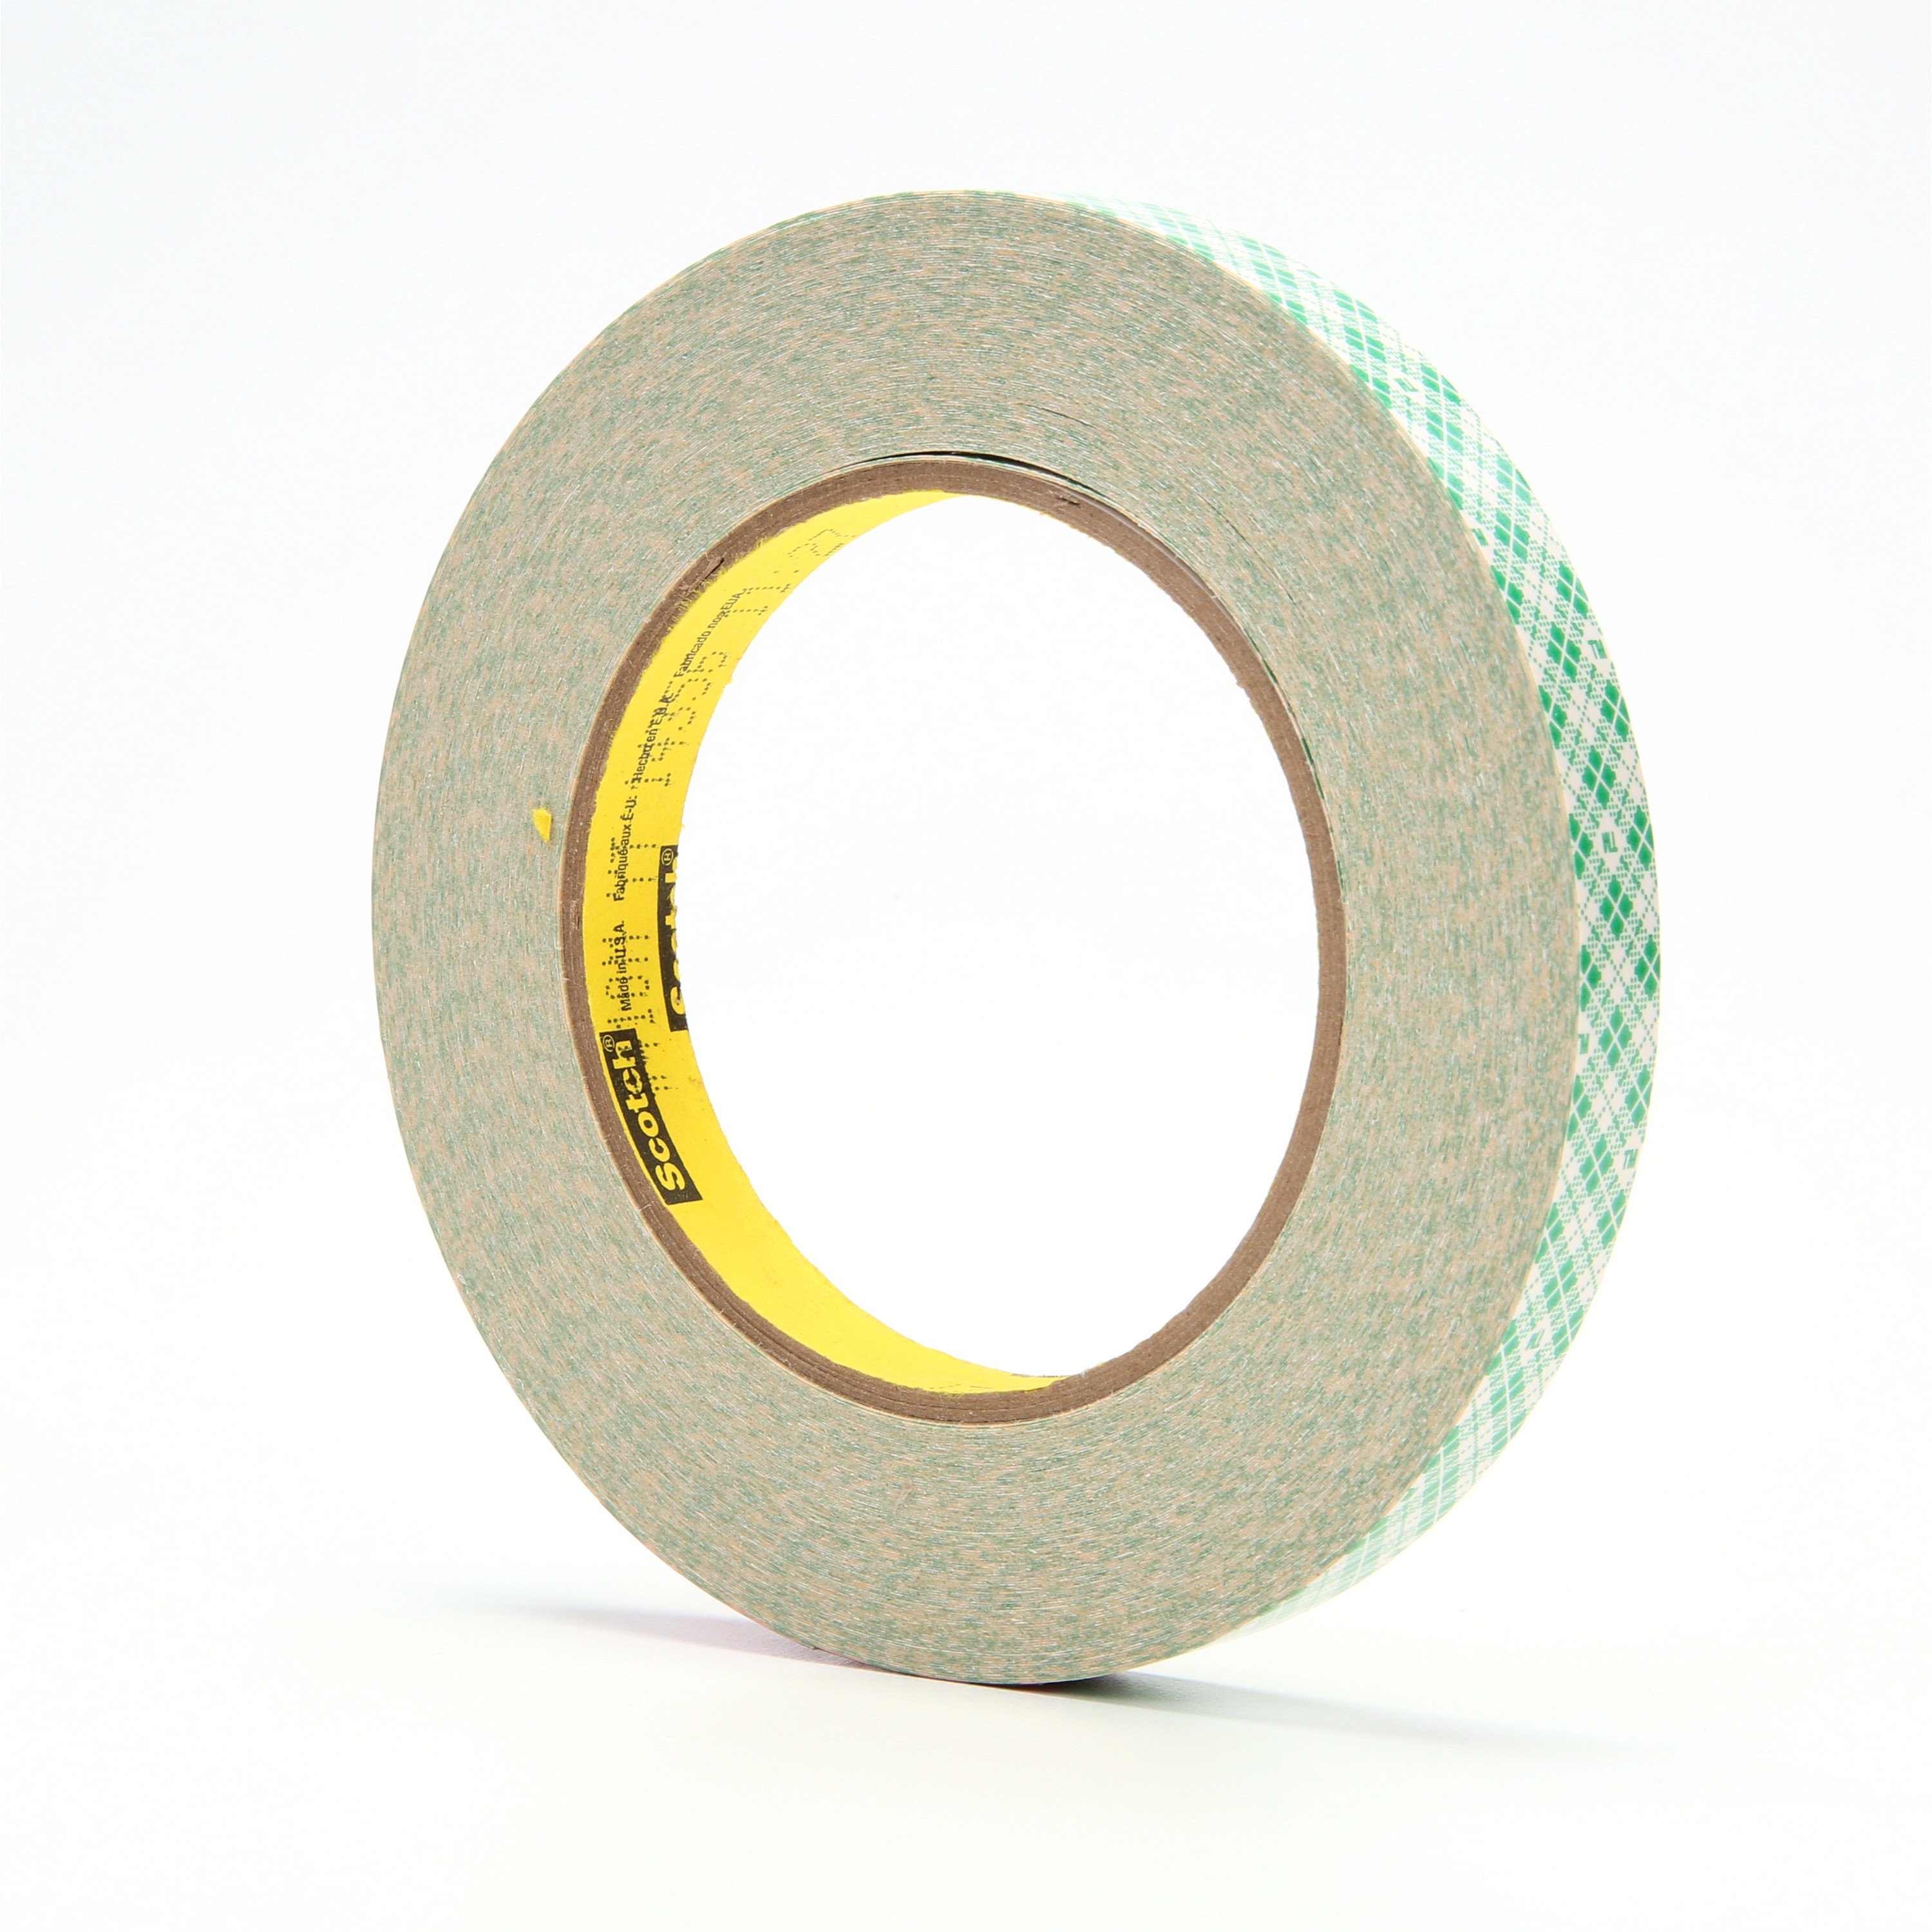 3M™ Double Coated Paper Tape 410M, Natural, 1/2 in x 36 yd, 5 mil, 72 rolls per case